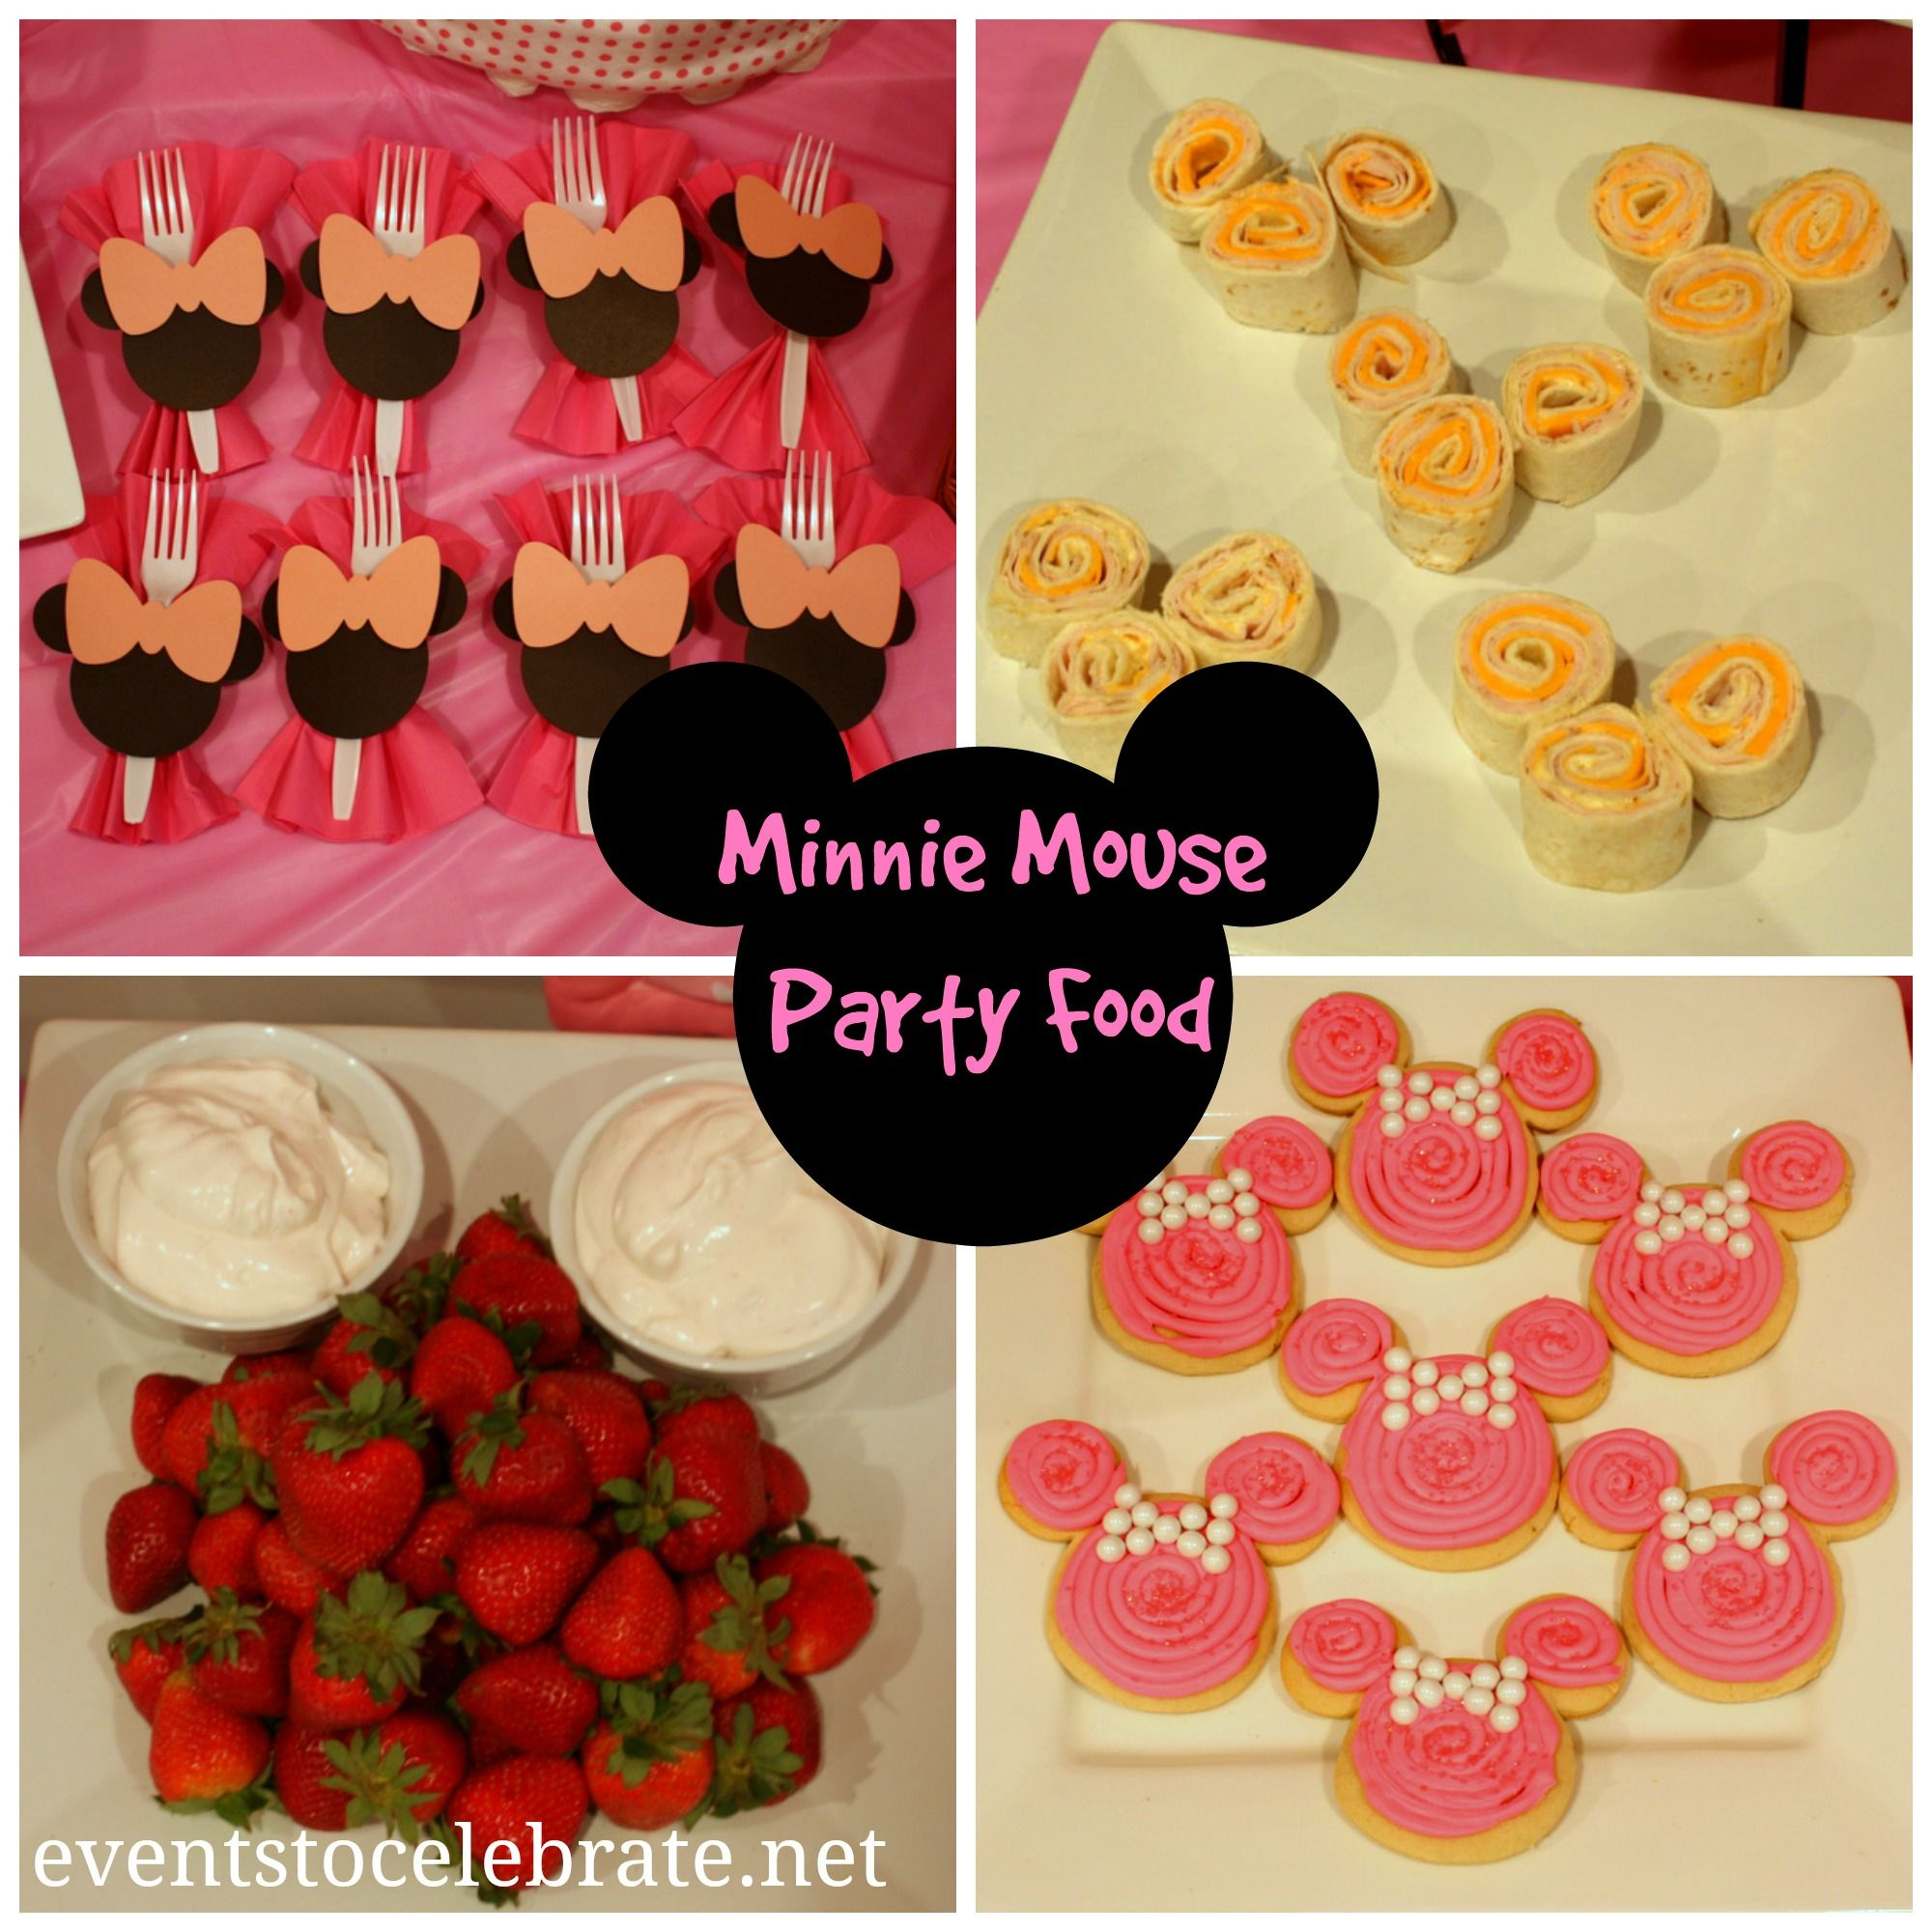 decorations and food ideas from this baby shower events to celebrate